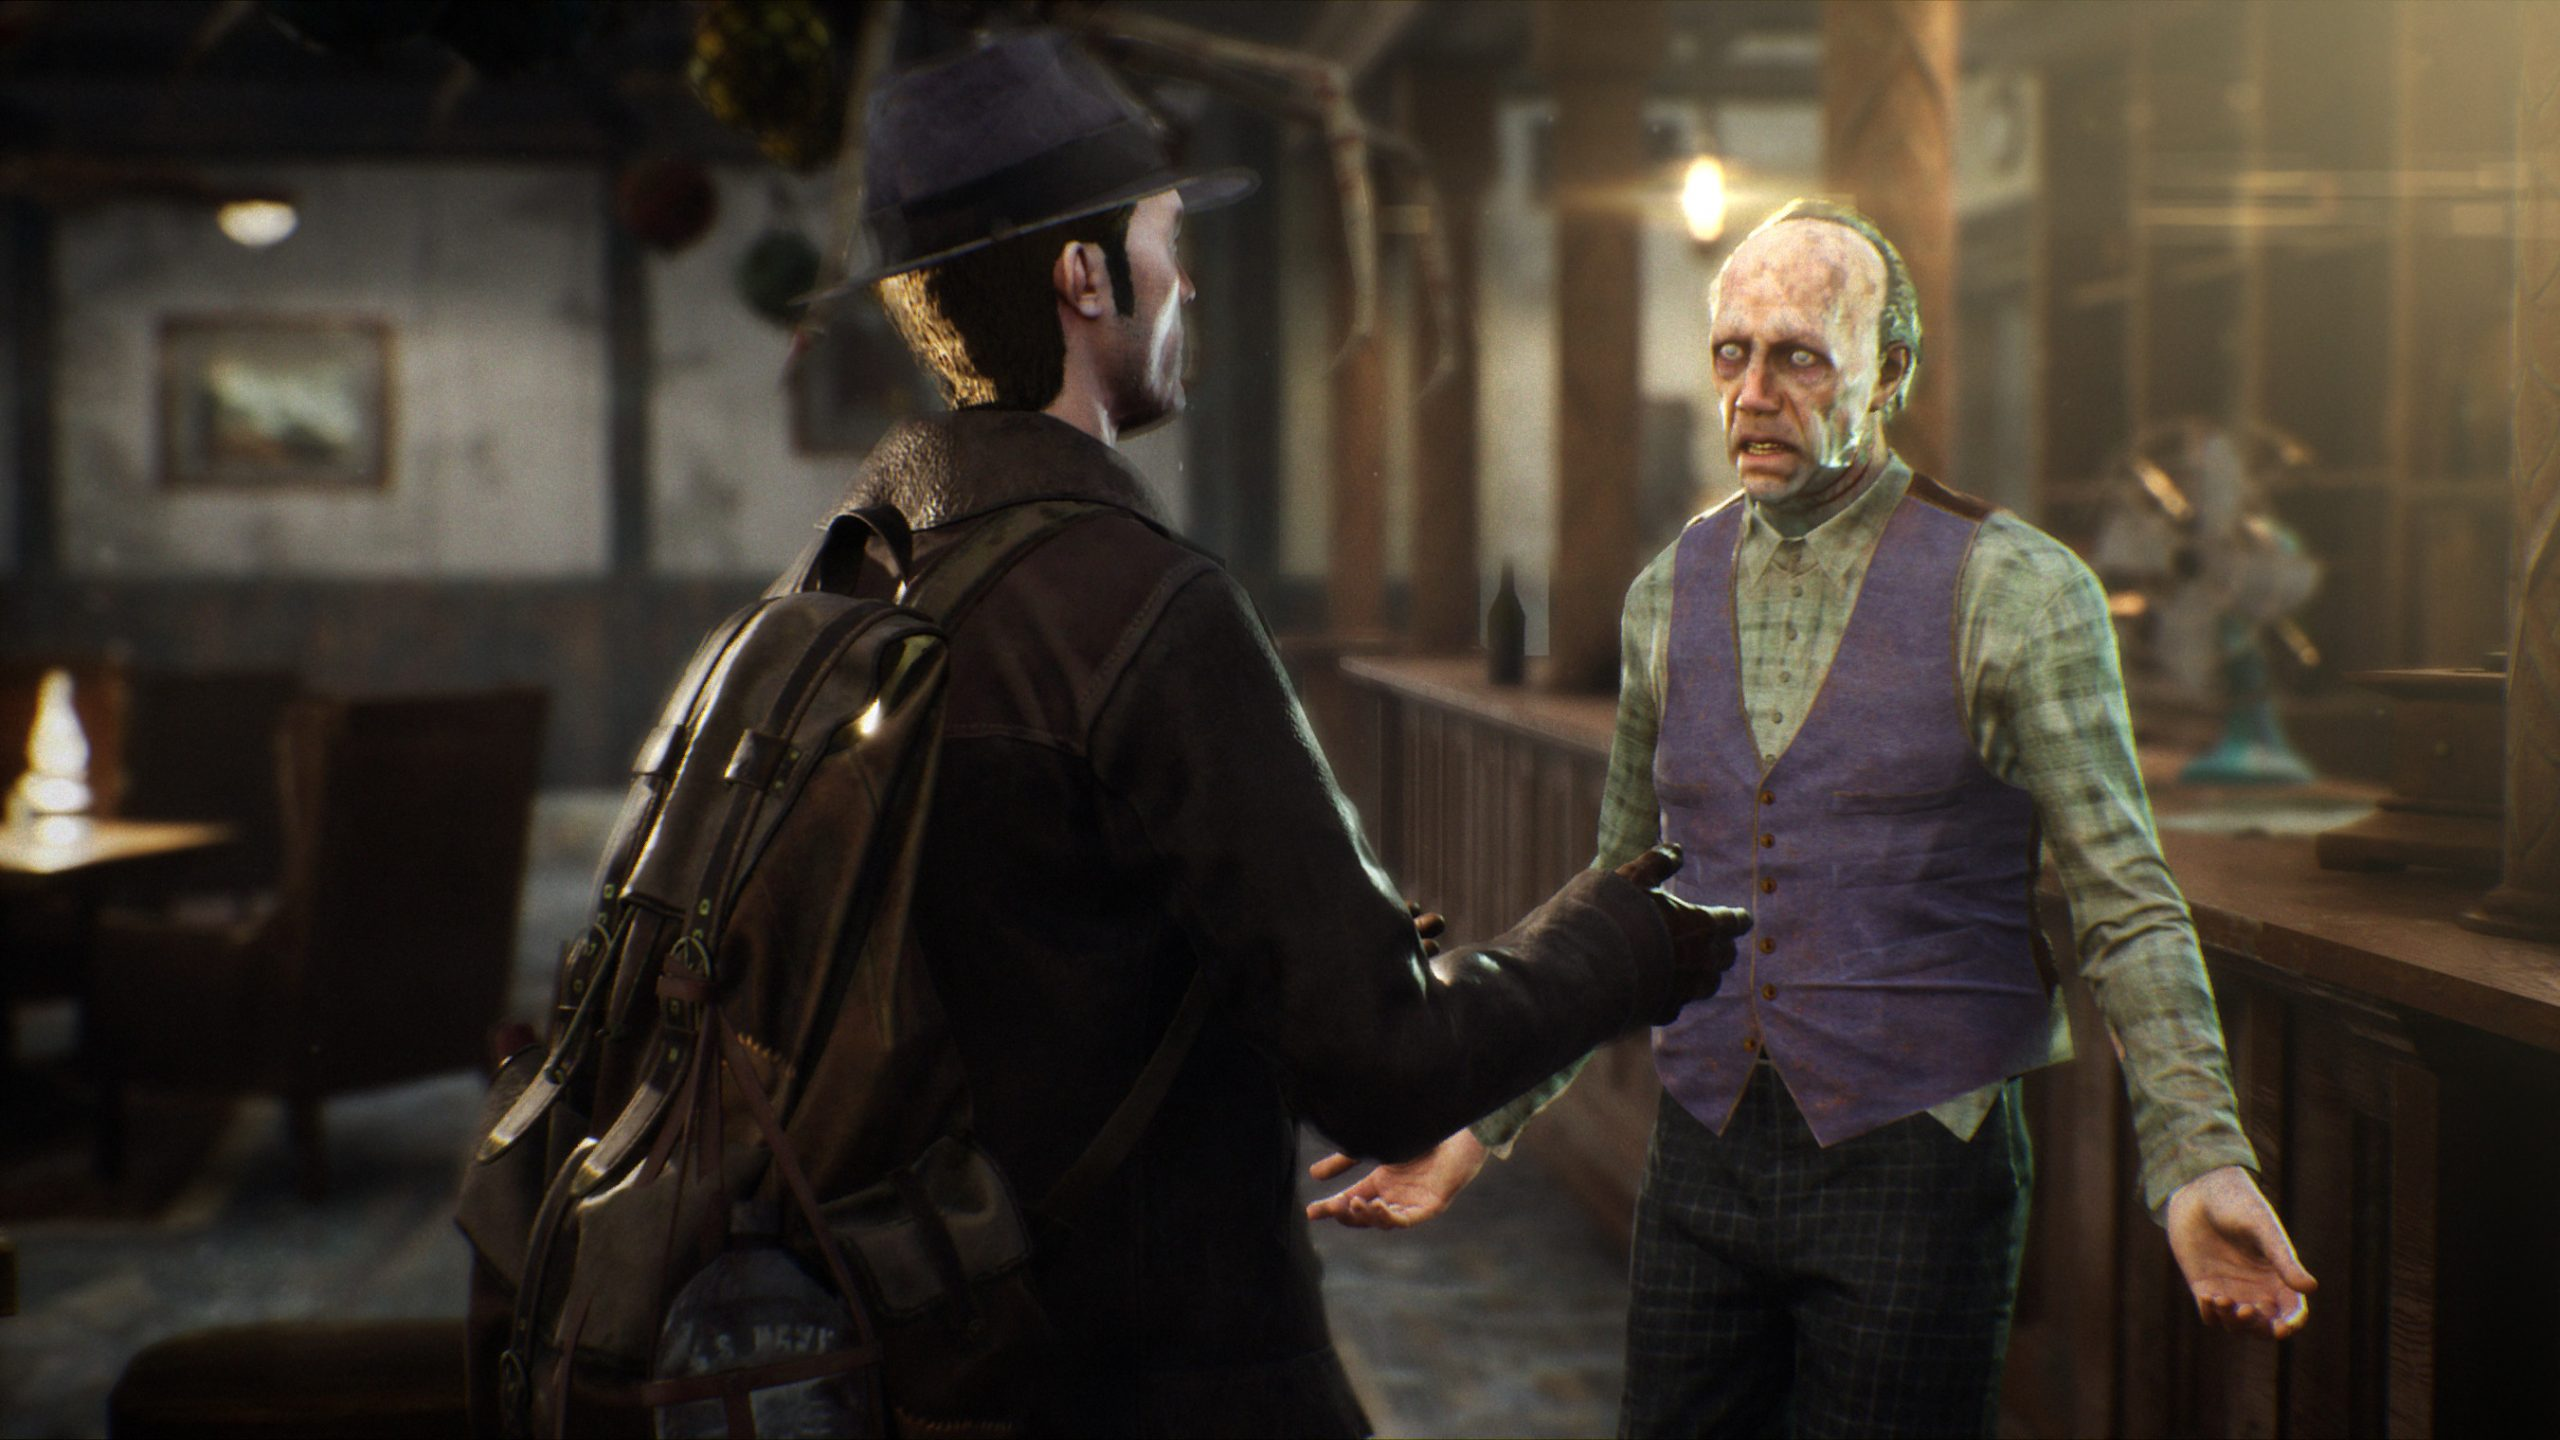 'The Sinking City' Developer Doesn't Desire You to Protect Their Game on Steam